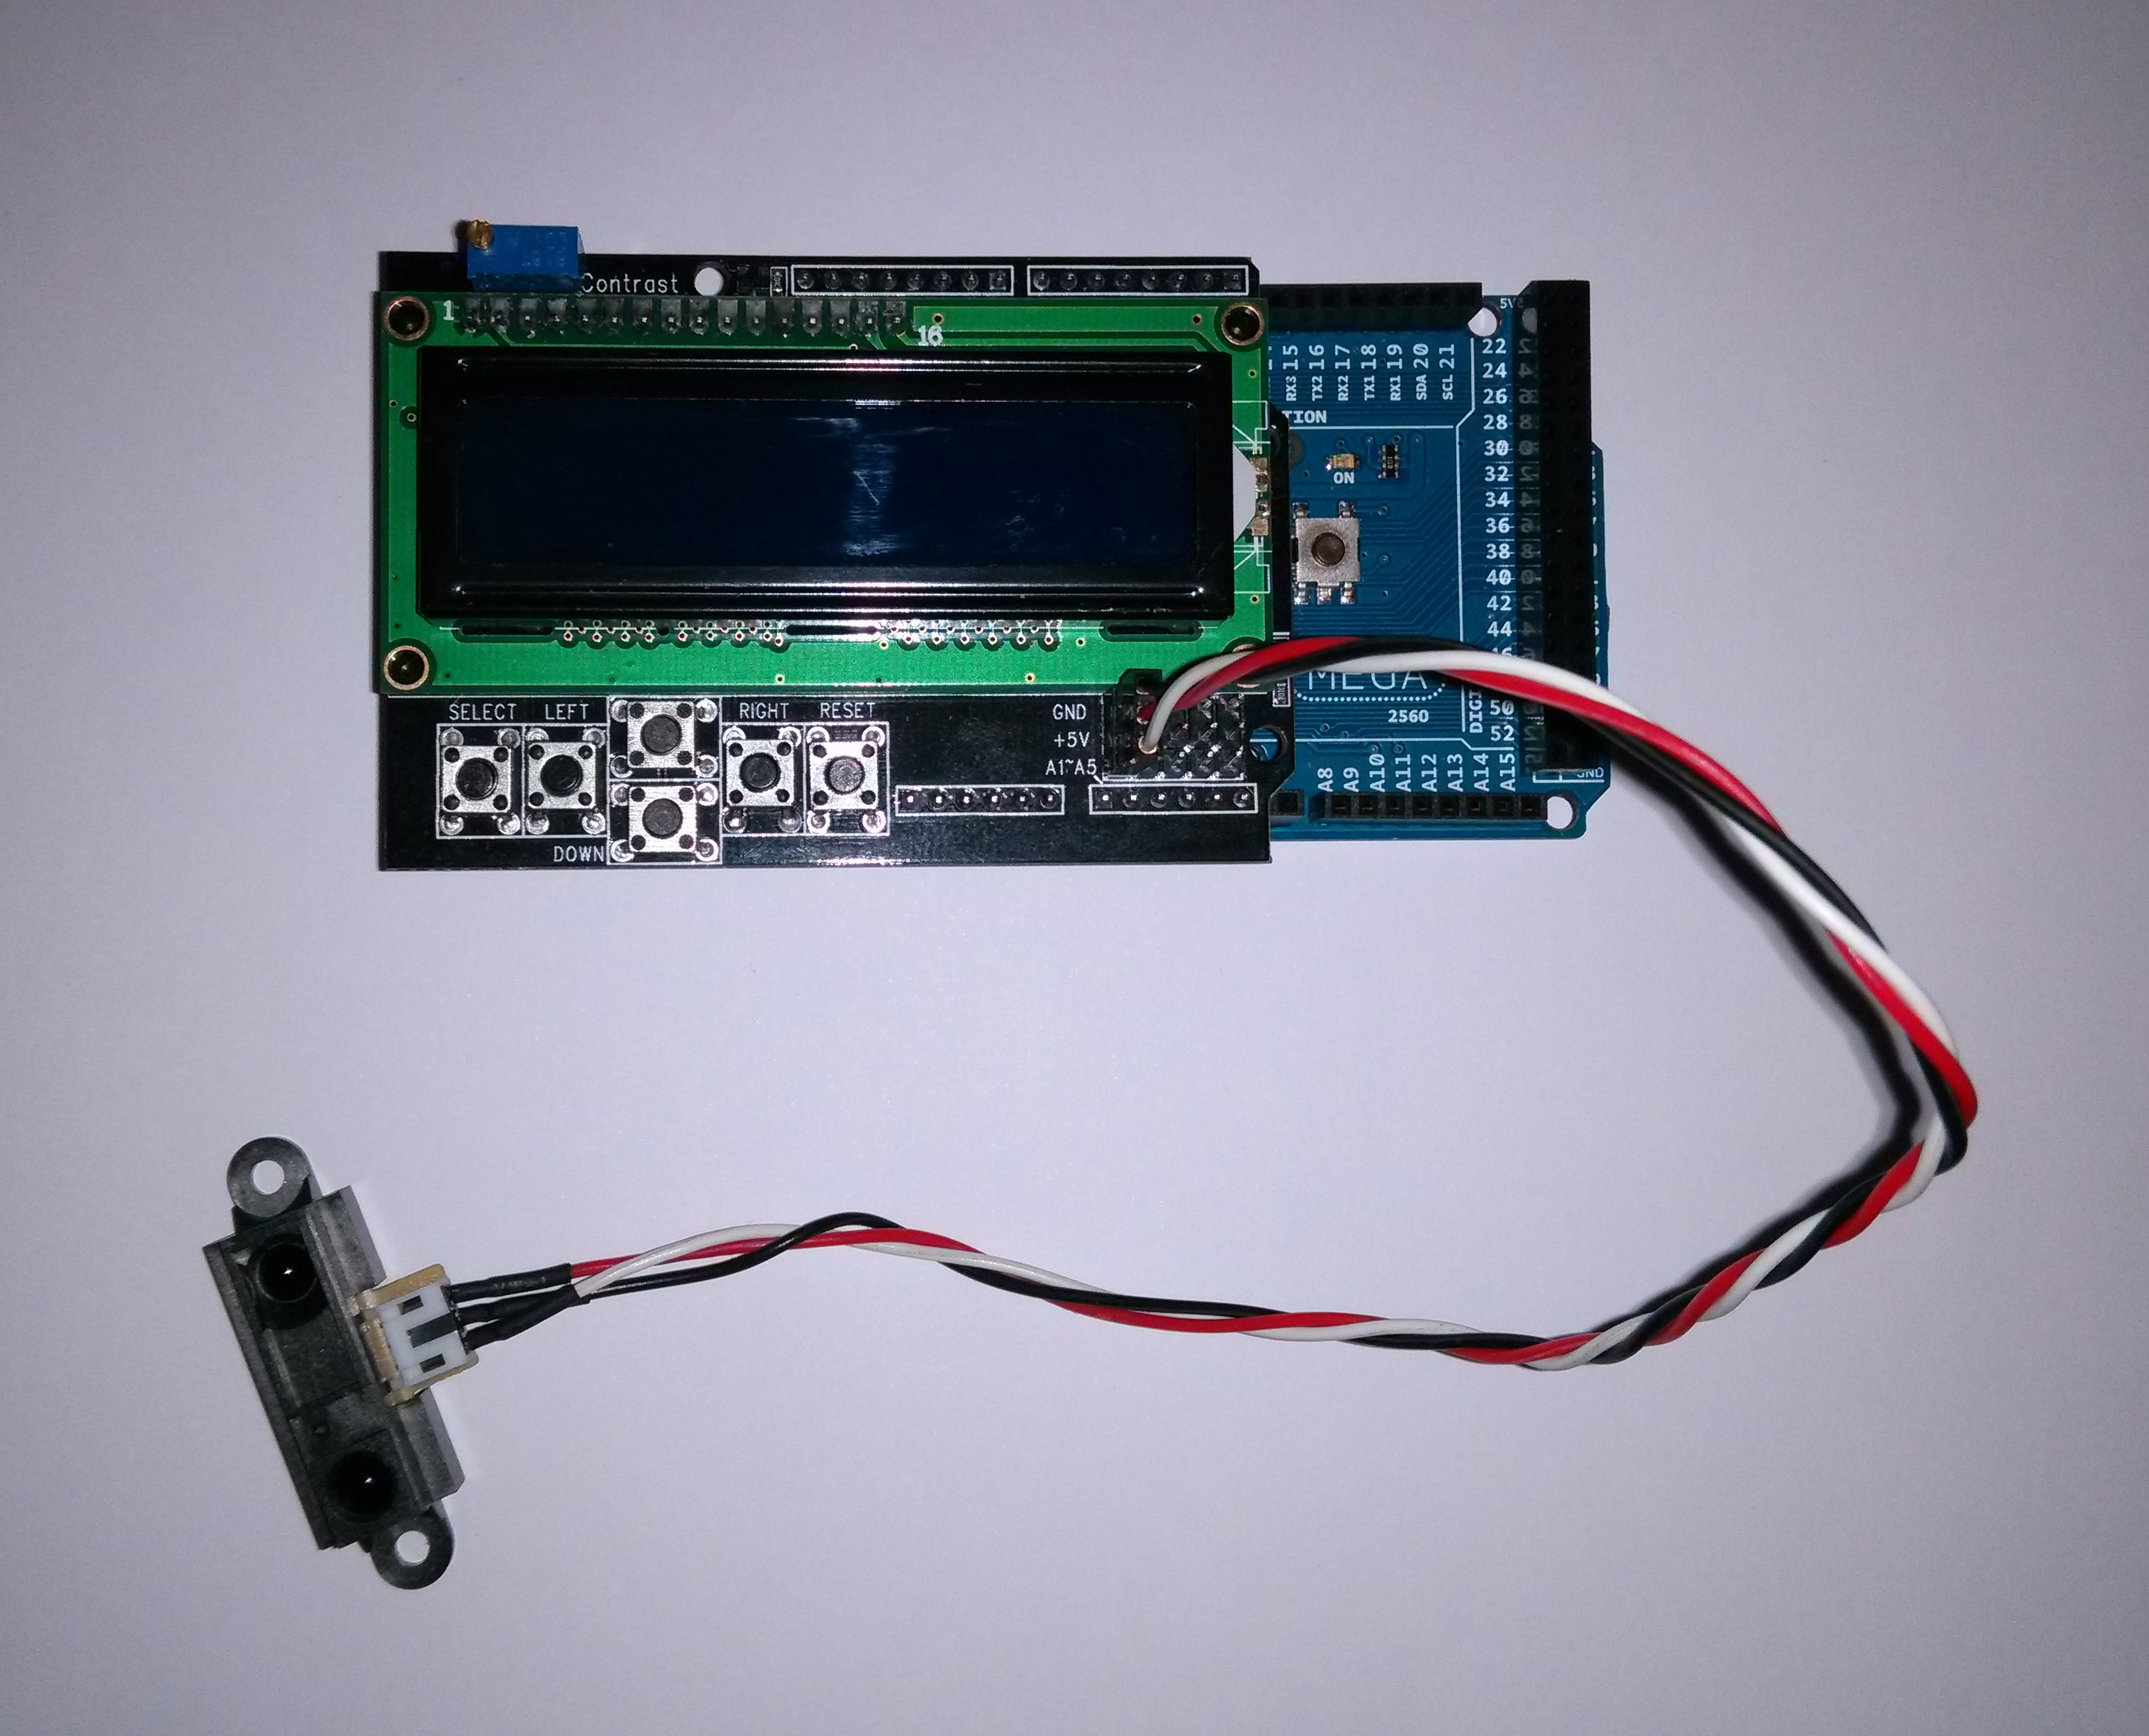 img/arduino-sharp-gp2y0a21.jpg